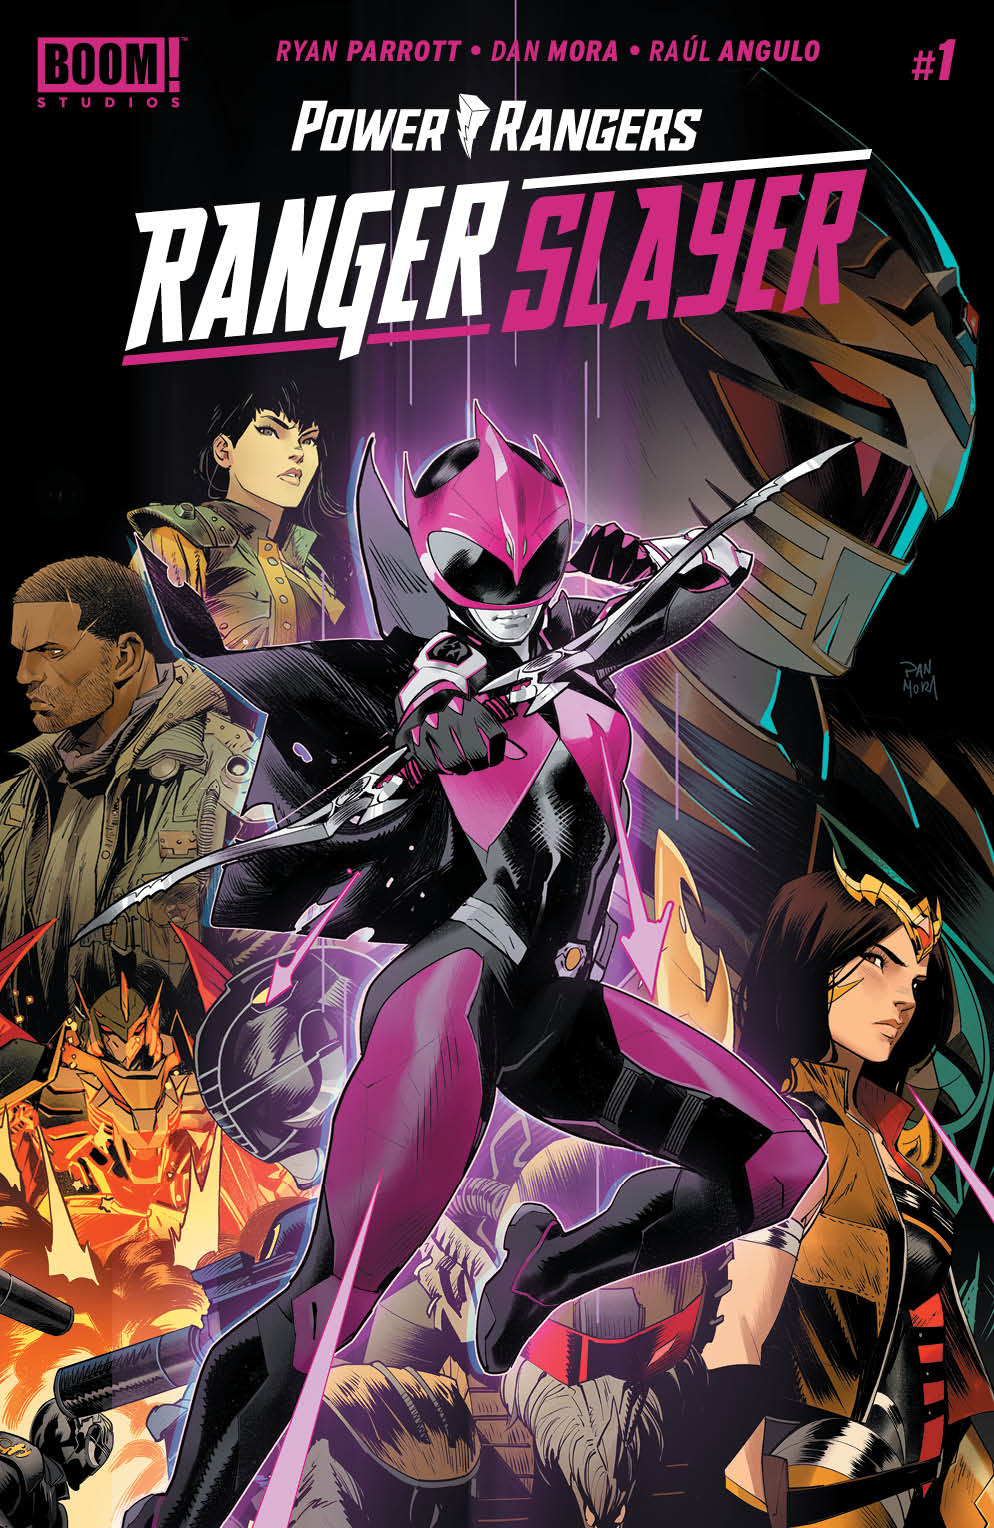 Power Rangers: Ranger Slayer #1 (BOOM! Studios) - New Comics